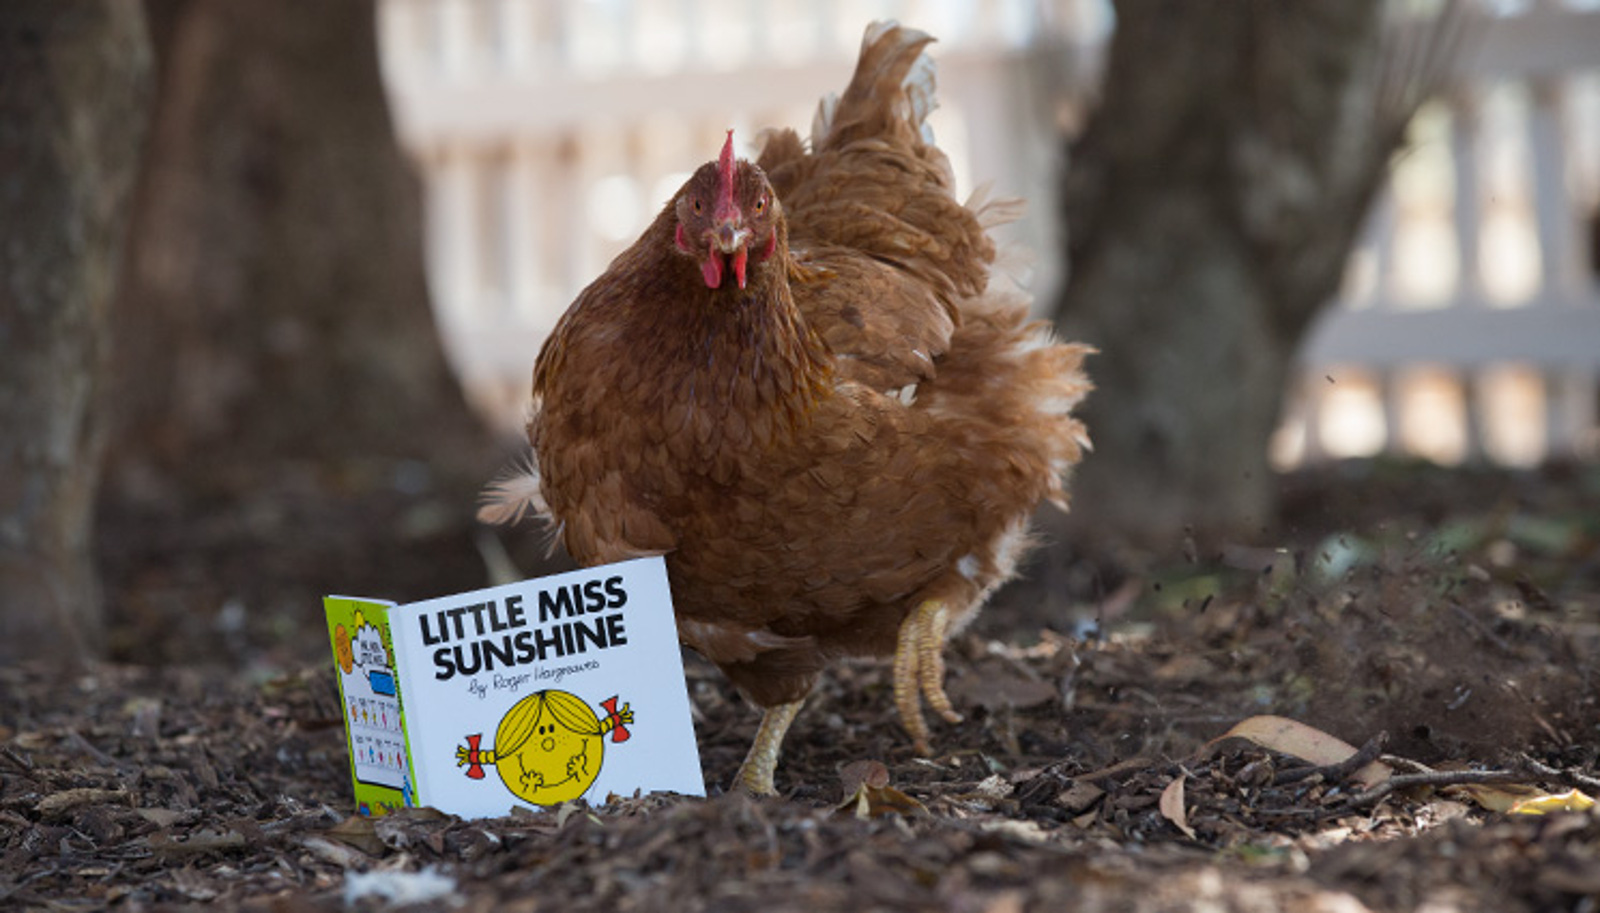 Rescued Battery Hen Shows the World Chickens Are as Intelligent as Cows, Pigs, Dogs, and Even Humans